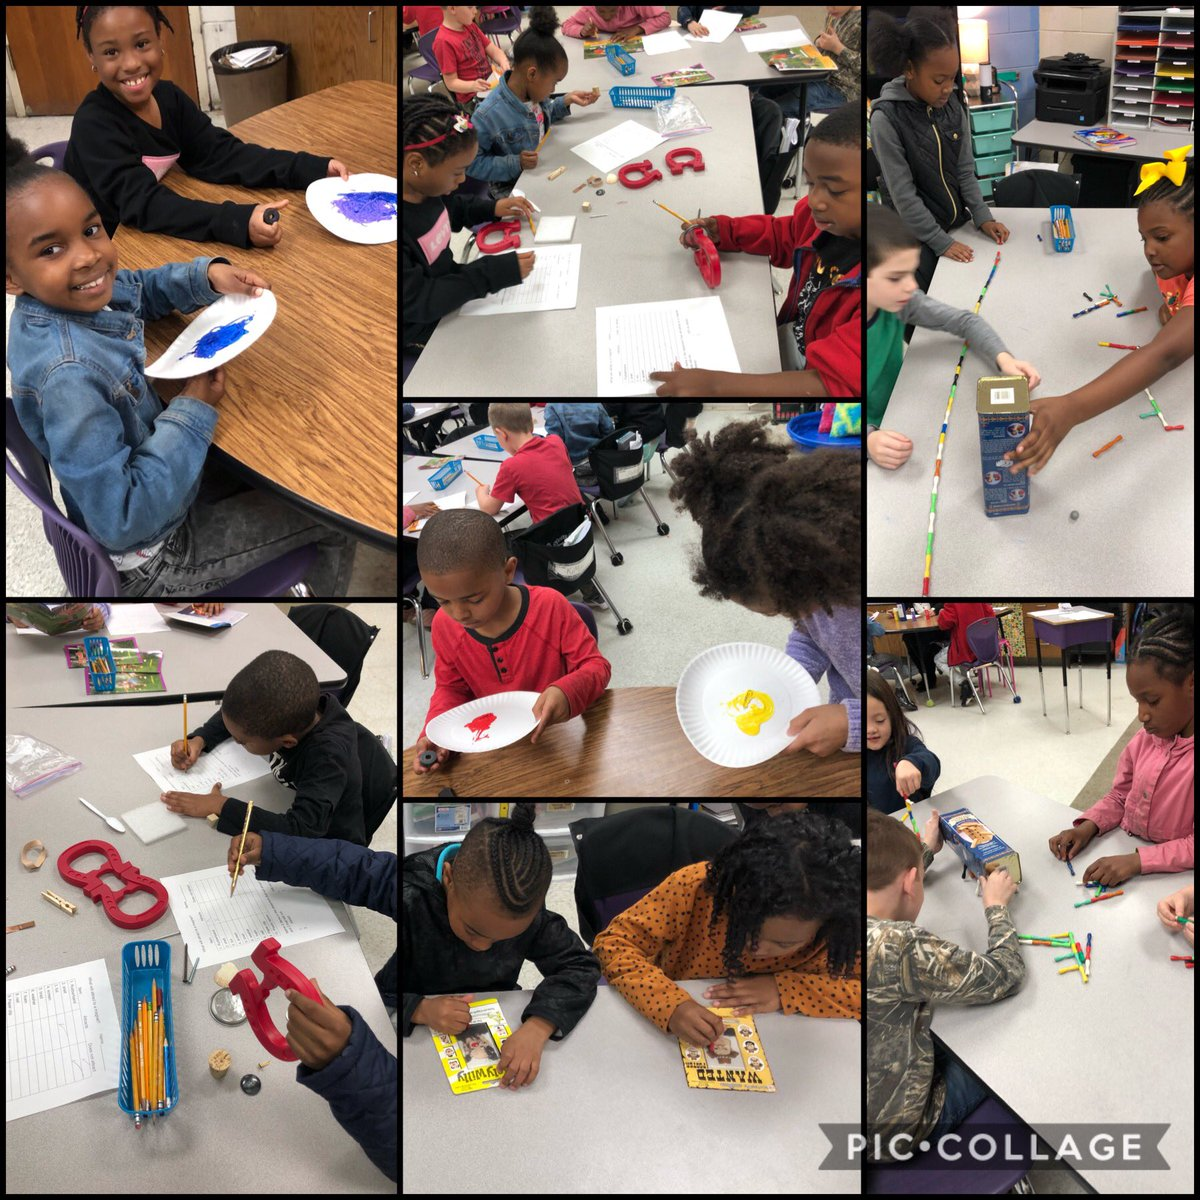 Learning about magnets through exploration!  #sumterstrong #handsonlearning #rm309rockspic.twitter.com/6kMszE2nlj